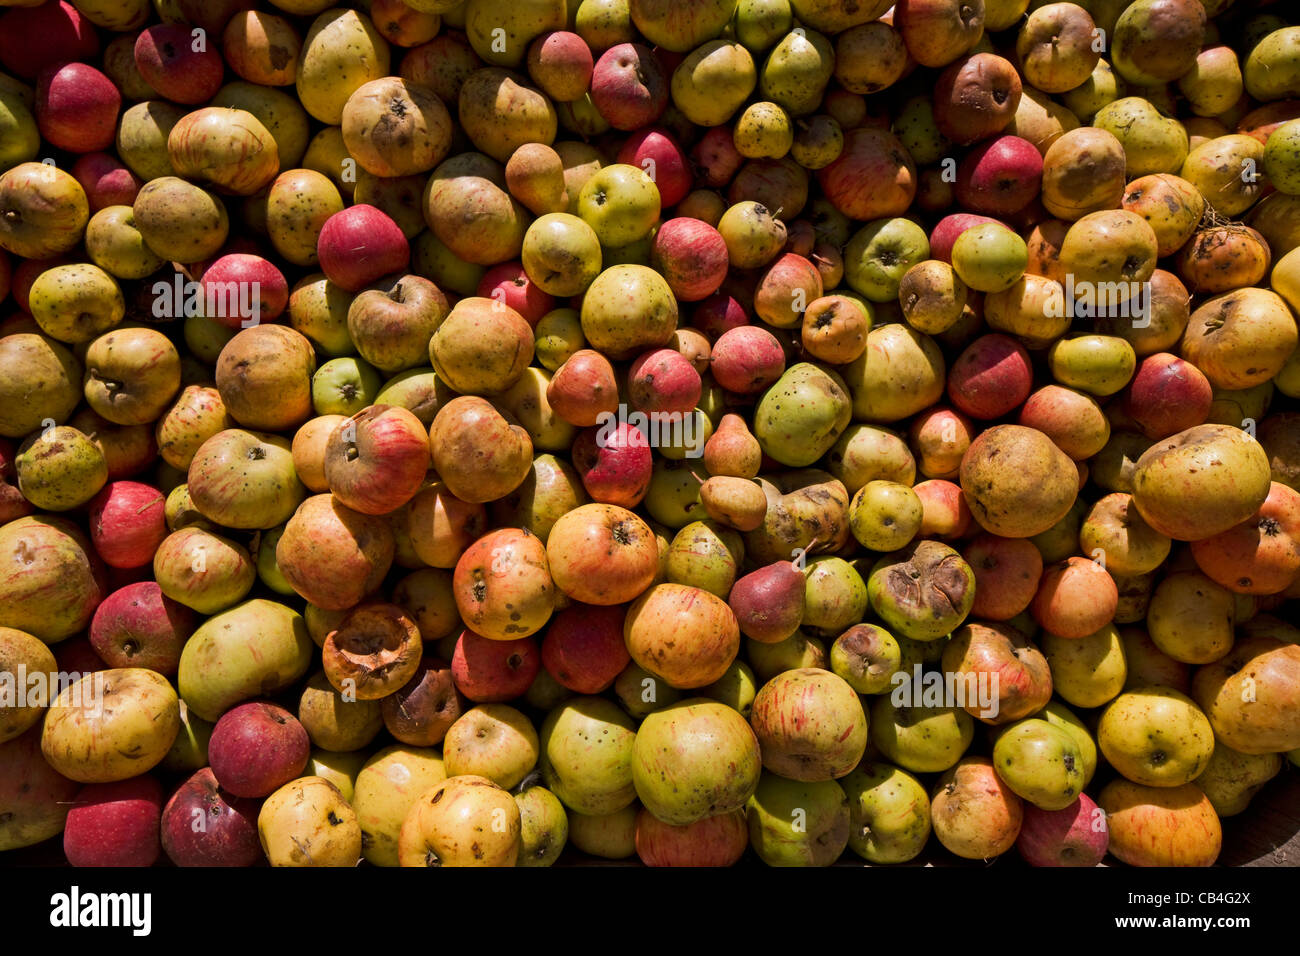 Pile of harvested fallen apples from orchard for the production of fruit juice, Hesbaye, Belgium - Stock Image